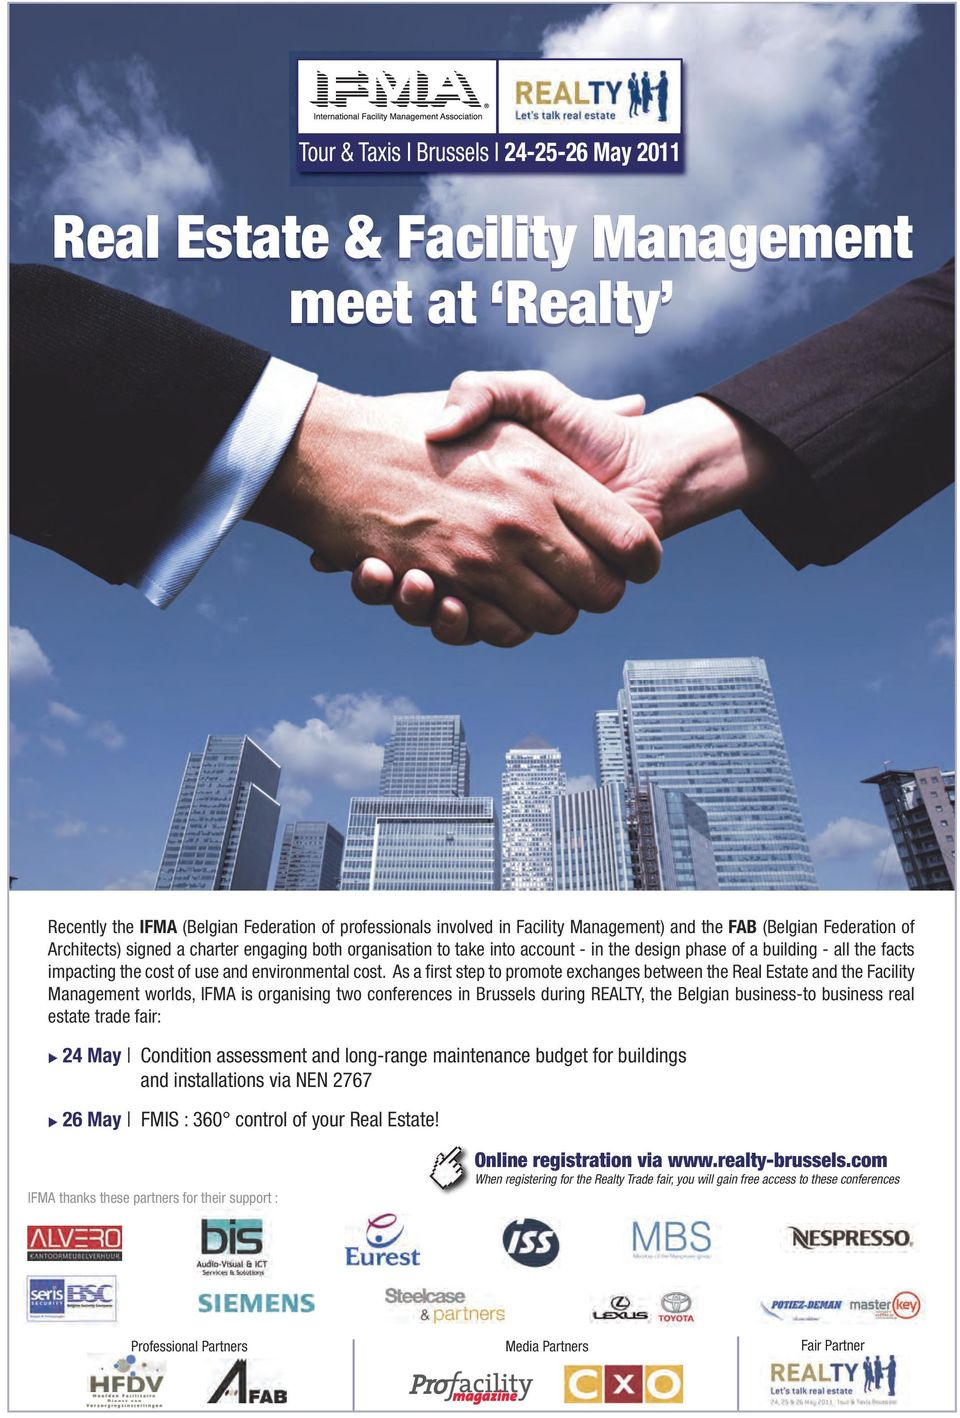 cost. As a first step to promote exchanges between the Real Estate and the Facility Management worlds, IFMA is organising two conferences in Brussels during REALTY, the Belgian business-to business